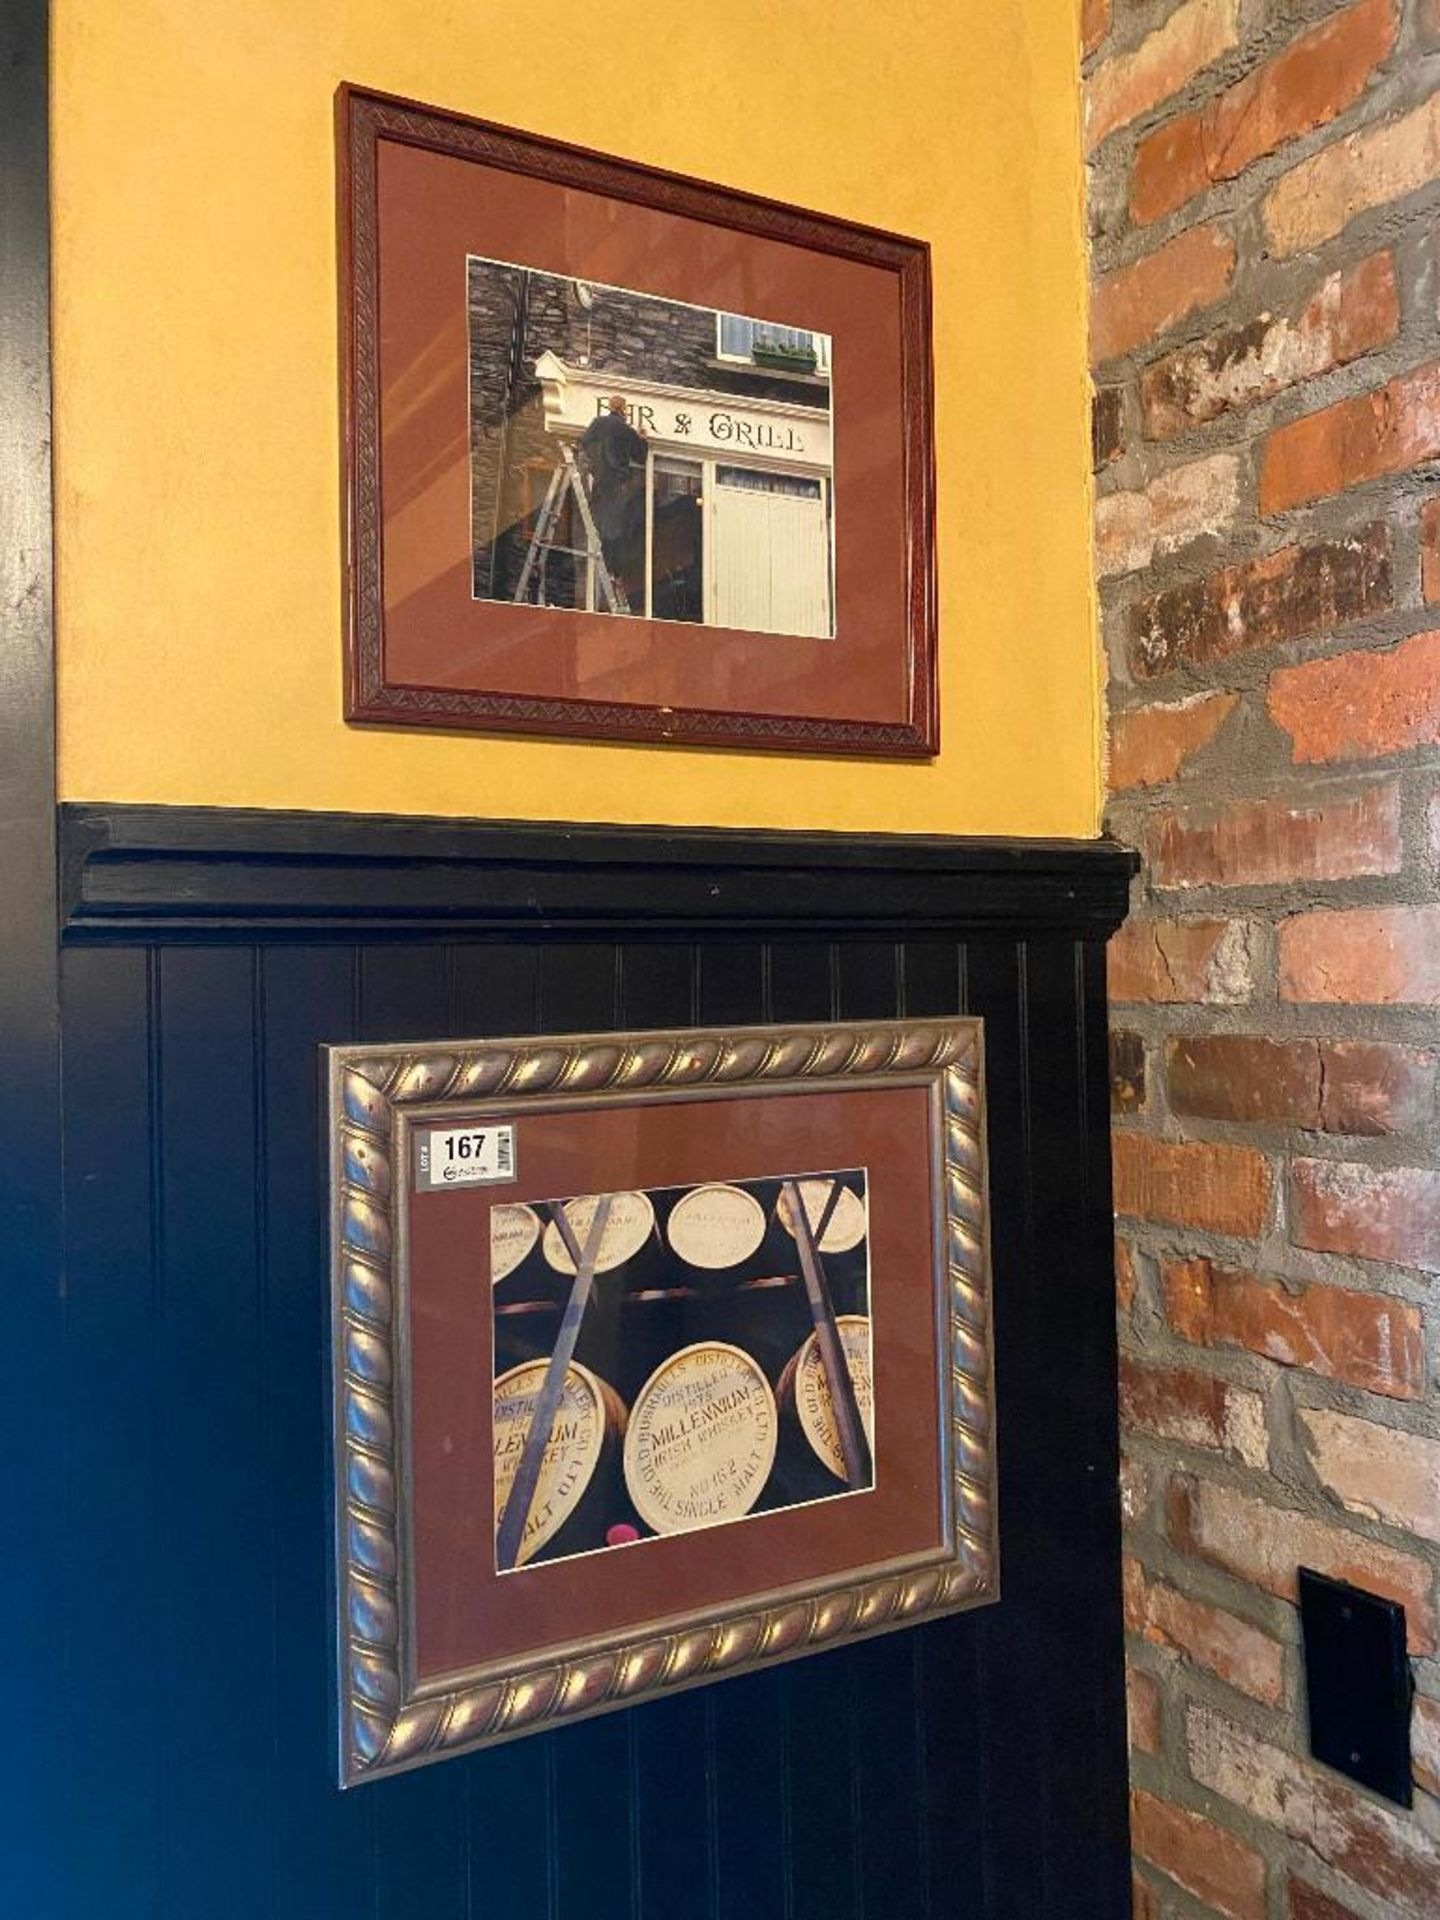 LOT OF (3) FRAMED MEMORABILIA PHOTOS & (1) METAL GUINNESS ADVERTISING SIGN - NOTE: REQUIRES REMOVAL - Image 2 of 2